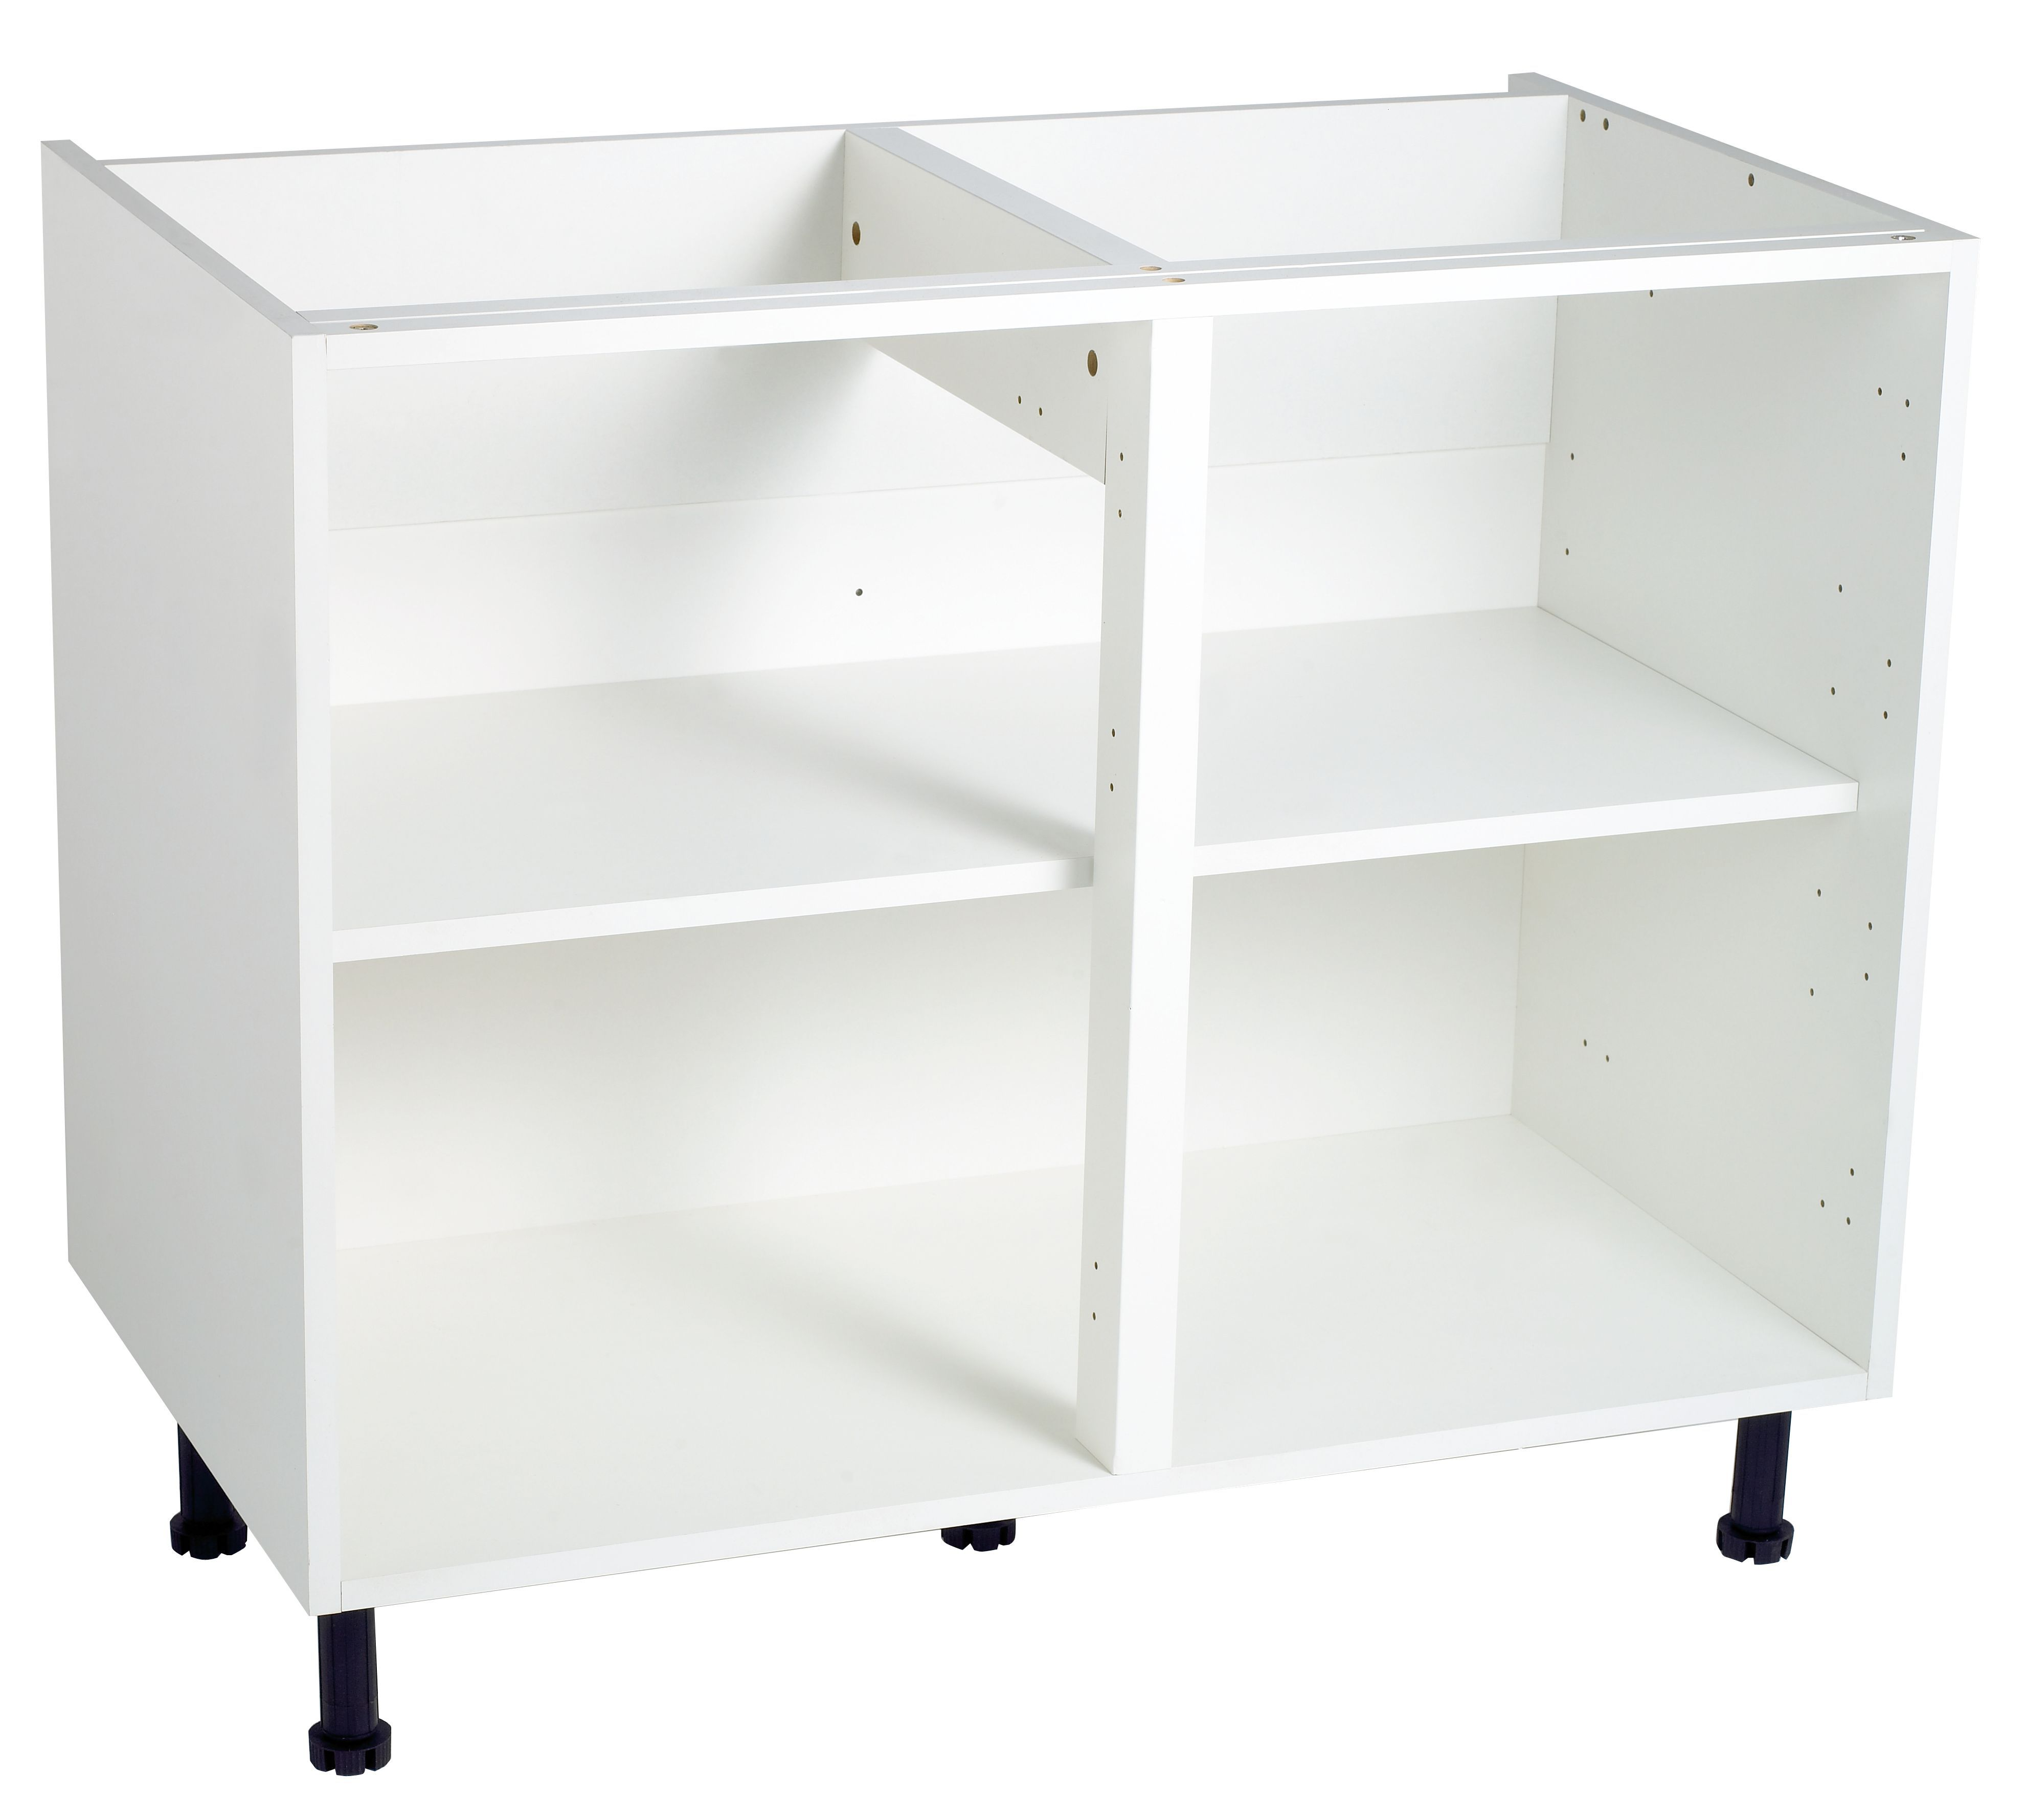 cooke lewis white standard base cabinet unit carcass w 1m